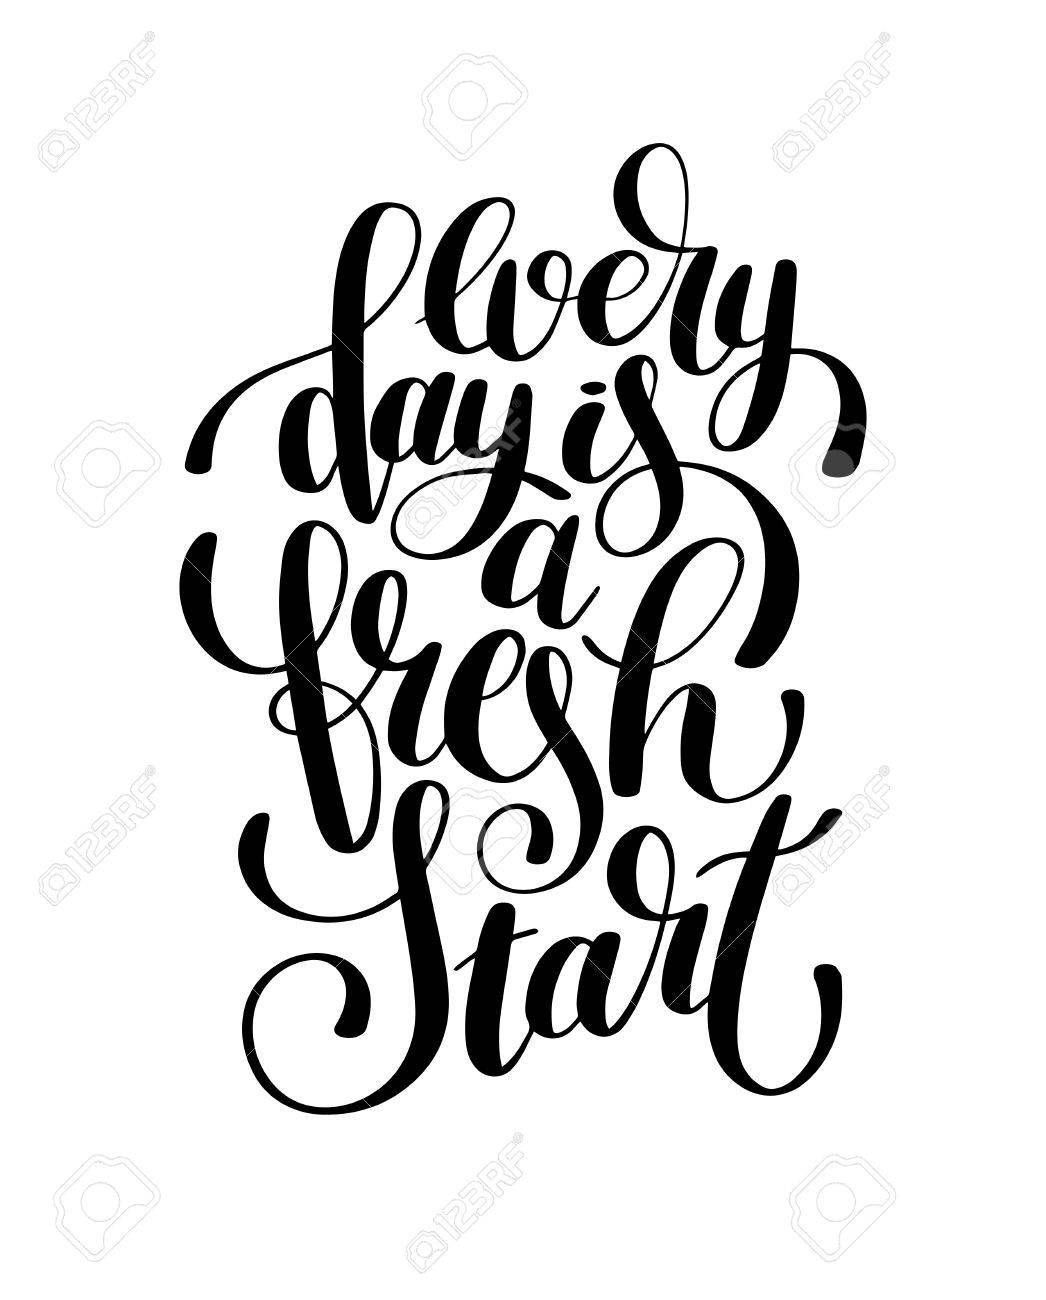 Poster design drawing - Vector Every Day Is A Fresh Start Handwritten Lettering Positive Quote Poster Design